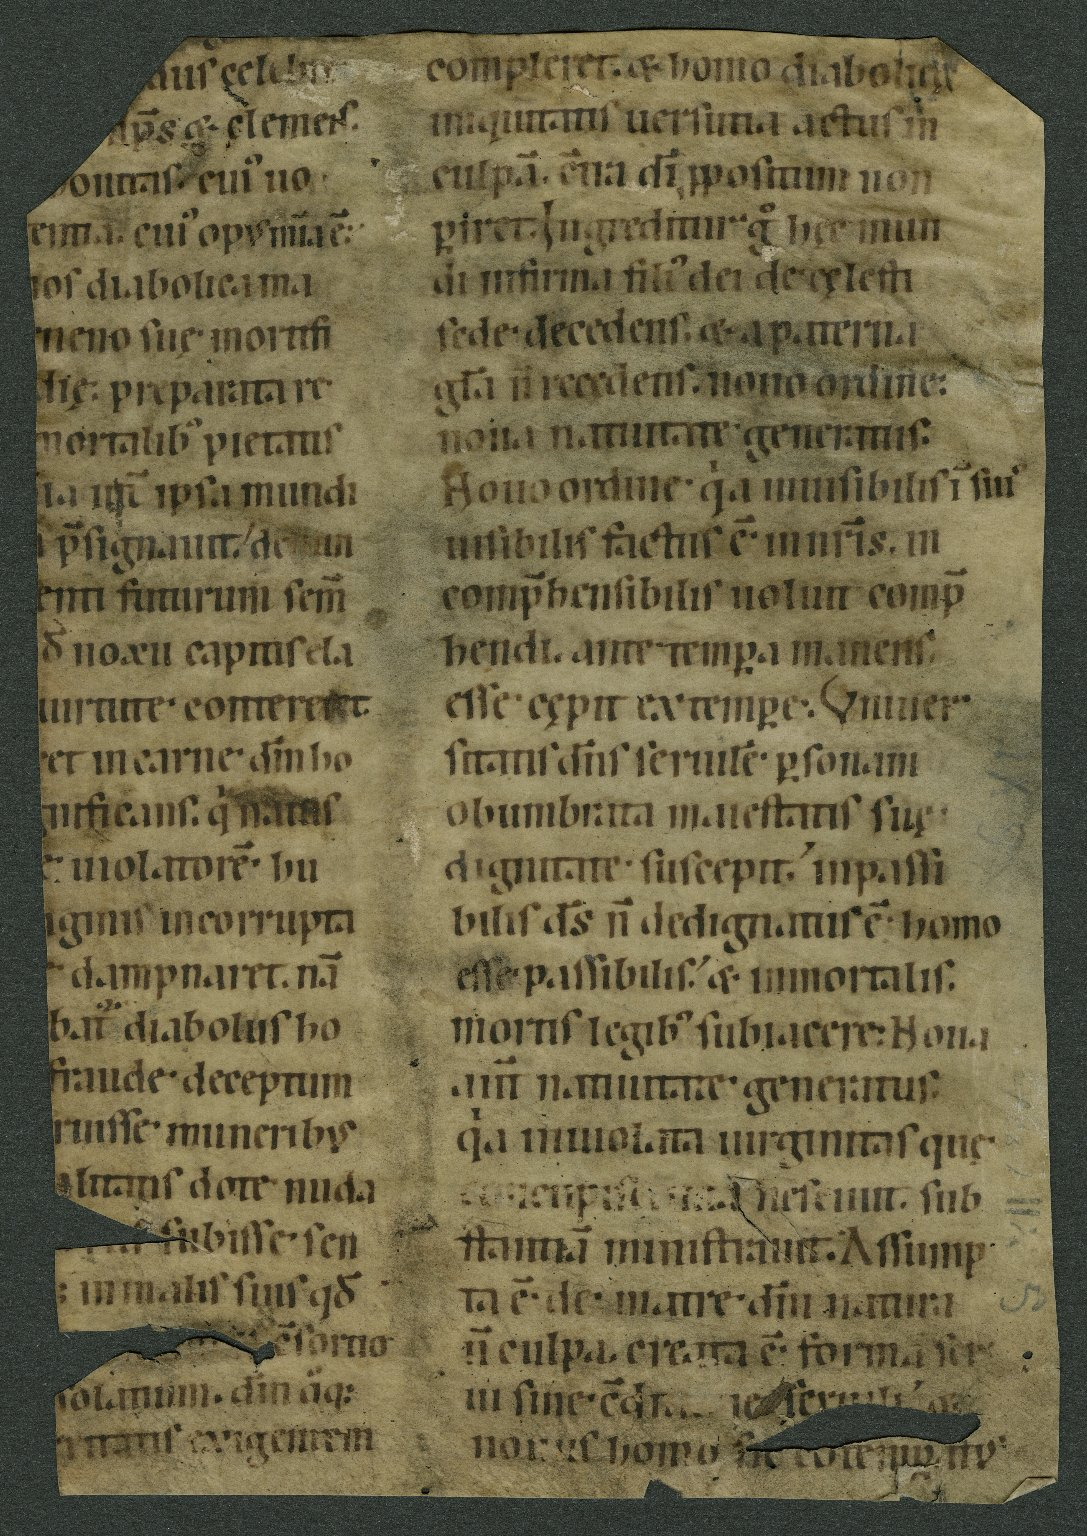 Unidentified Latin text